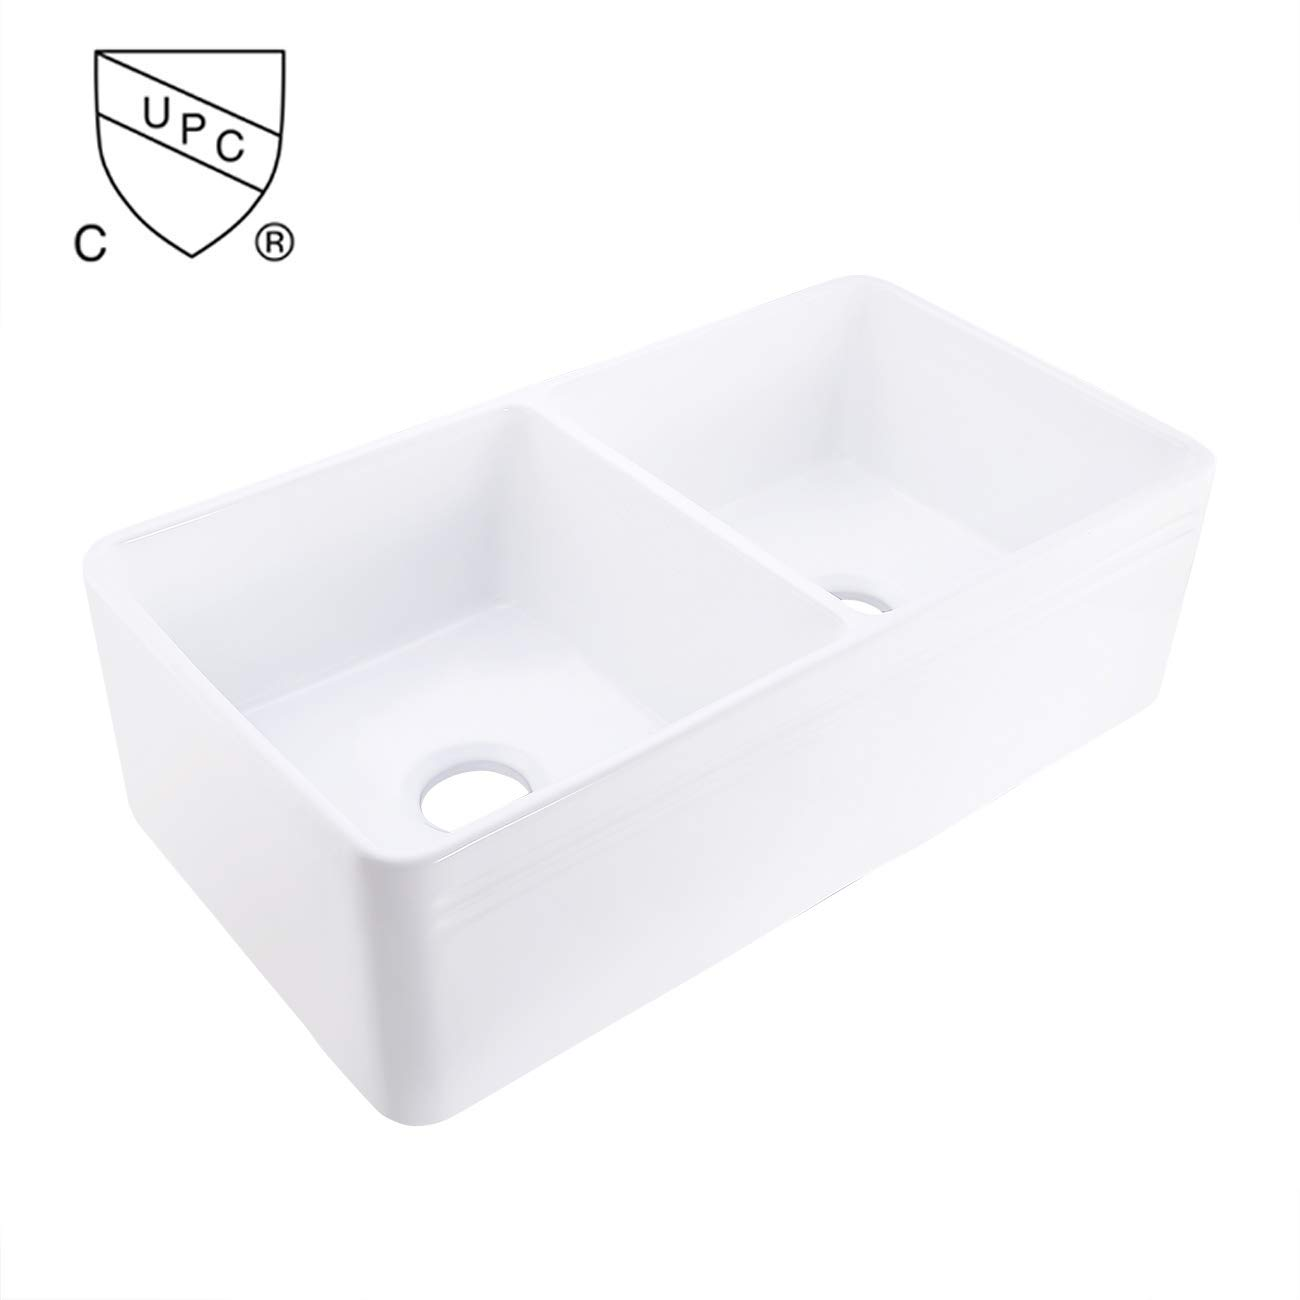 KES cUPC Fireclay Sink Farmhouse Double Kitchen Porcelain Sink 33-1 4 Inch Porcelain Undermount Rectangular White ,KPS100B